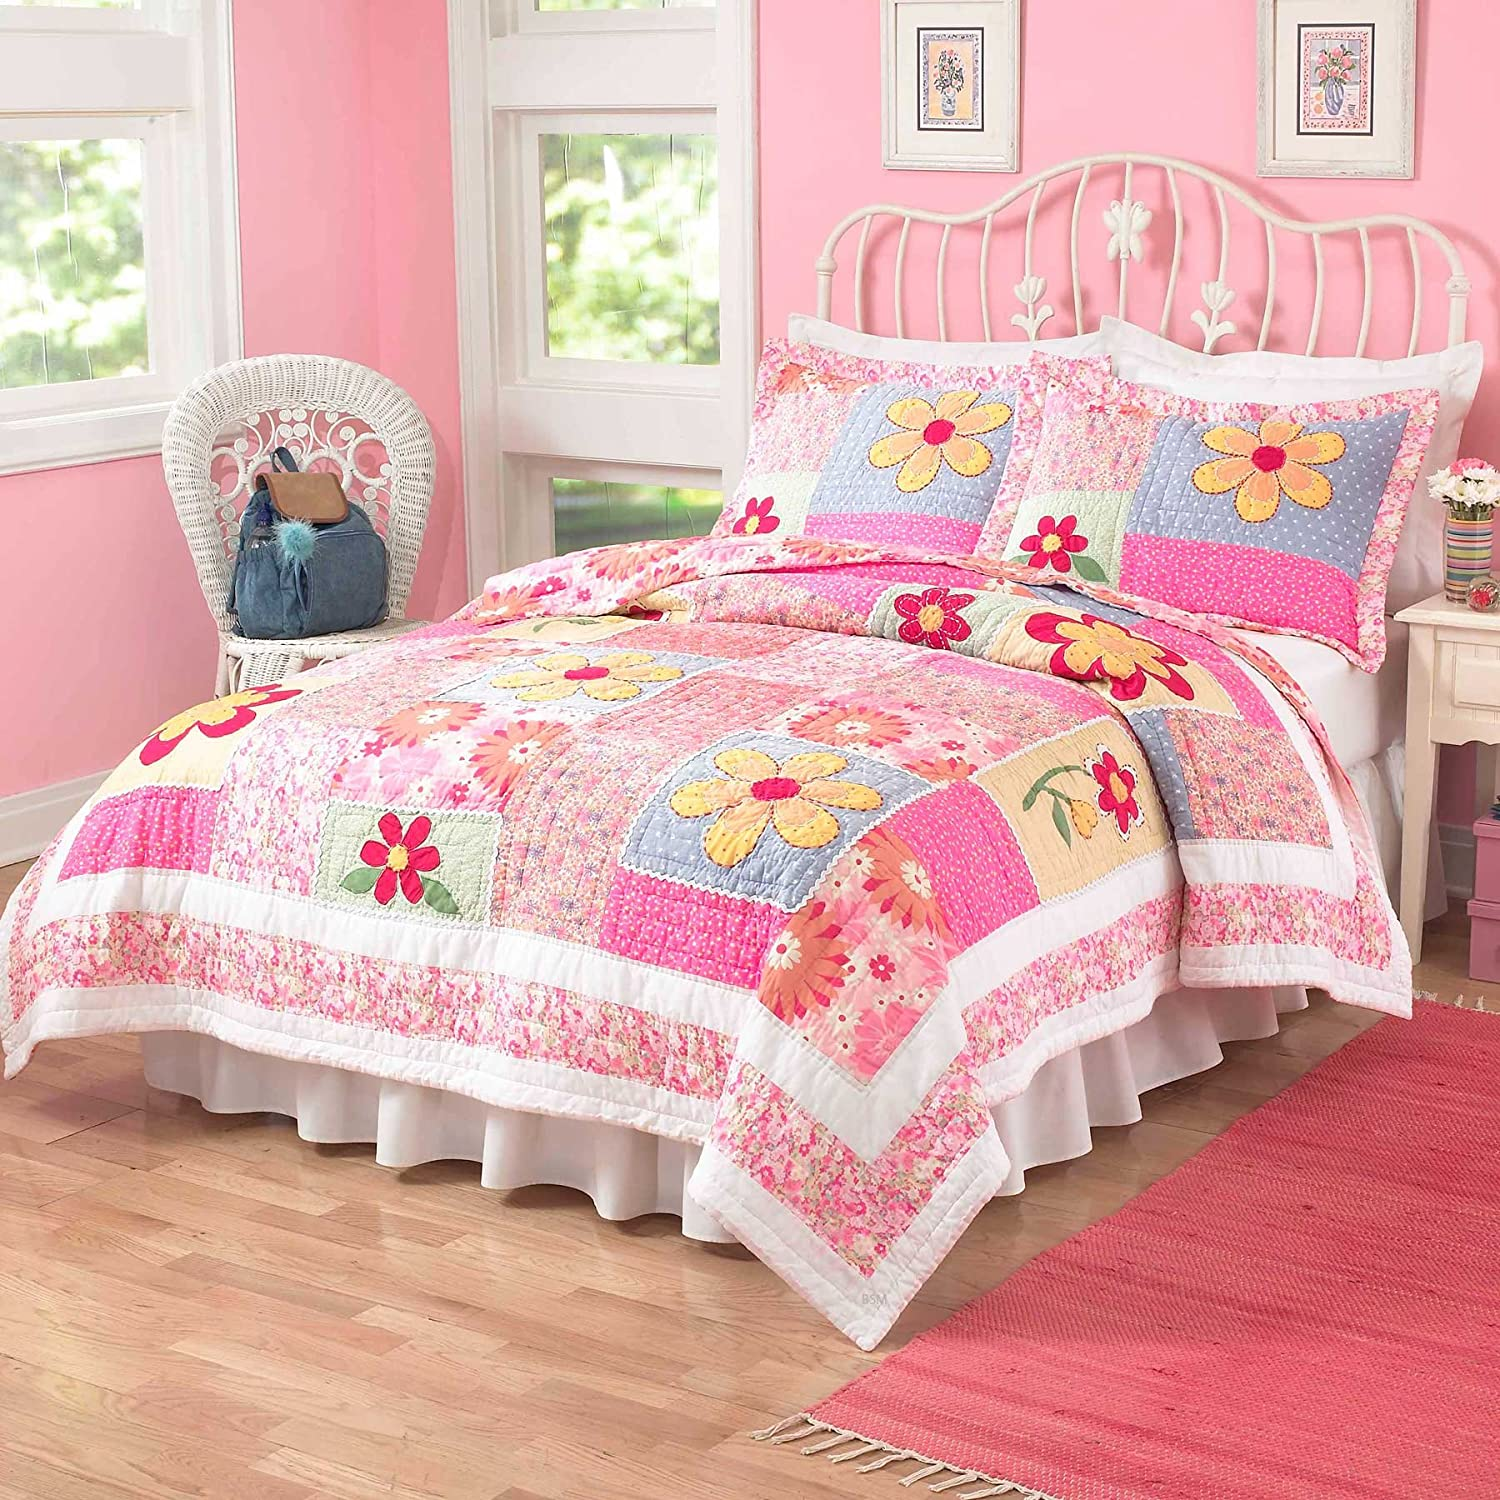 Spring floral bedding sets sale ease bedding with style for Bedroom quilt ideas